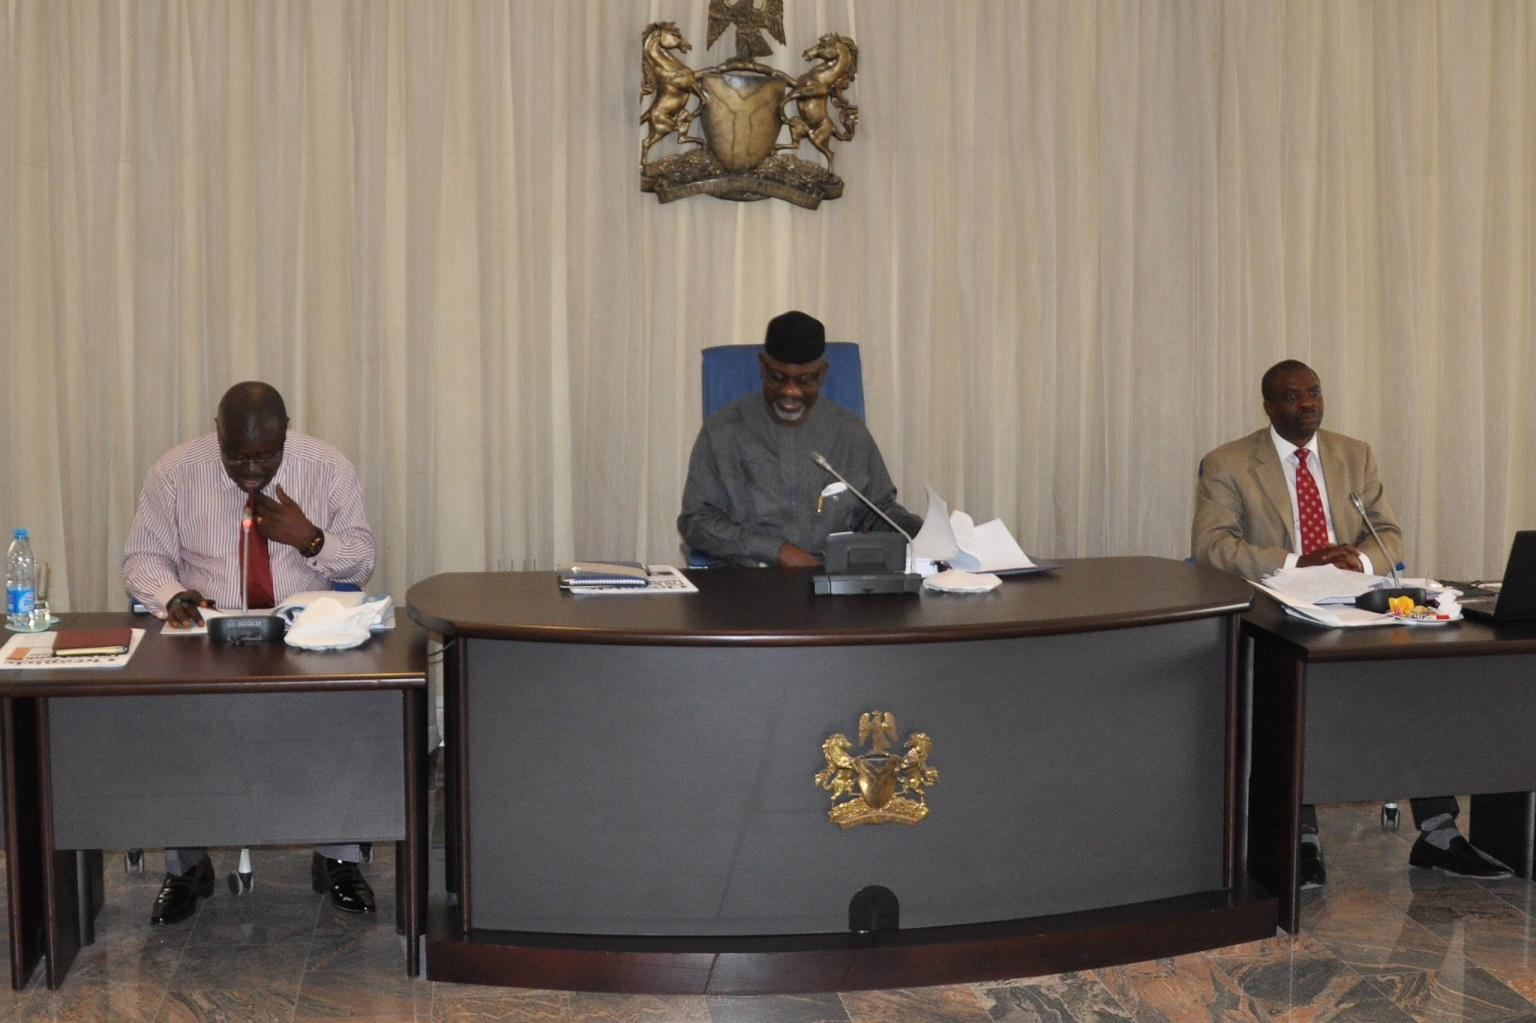 Governor Imoke (middle) flanked by his deputy, Efiok Cobham and former SSG, Mike Aniah in one of the SEC meetings